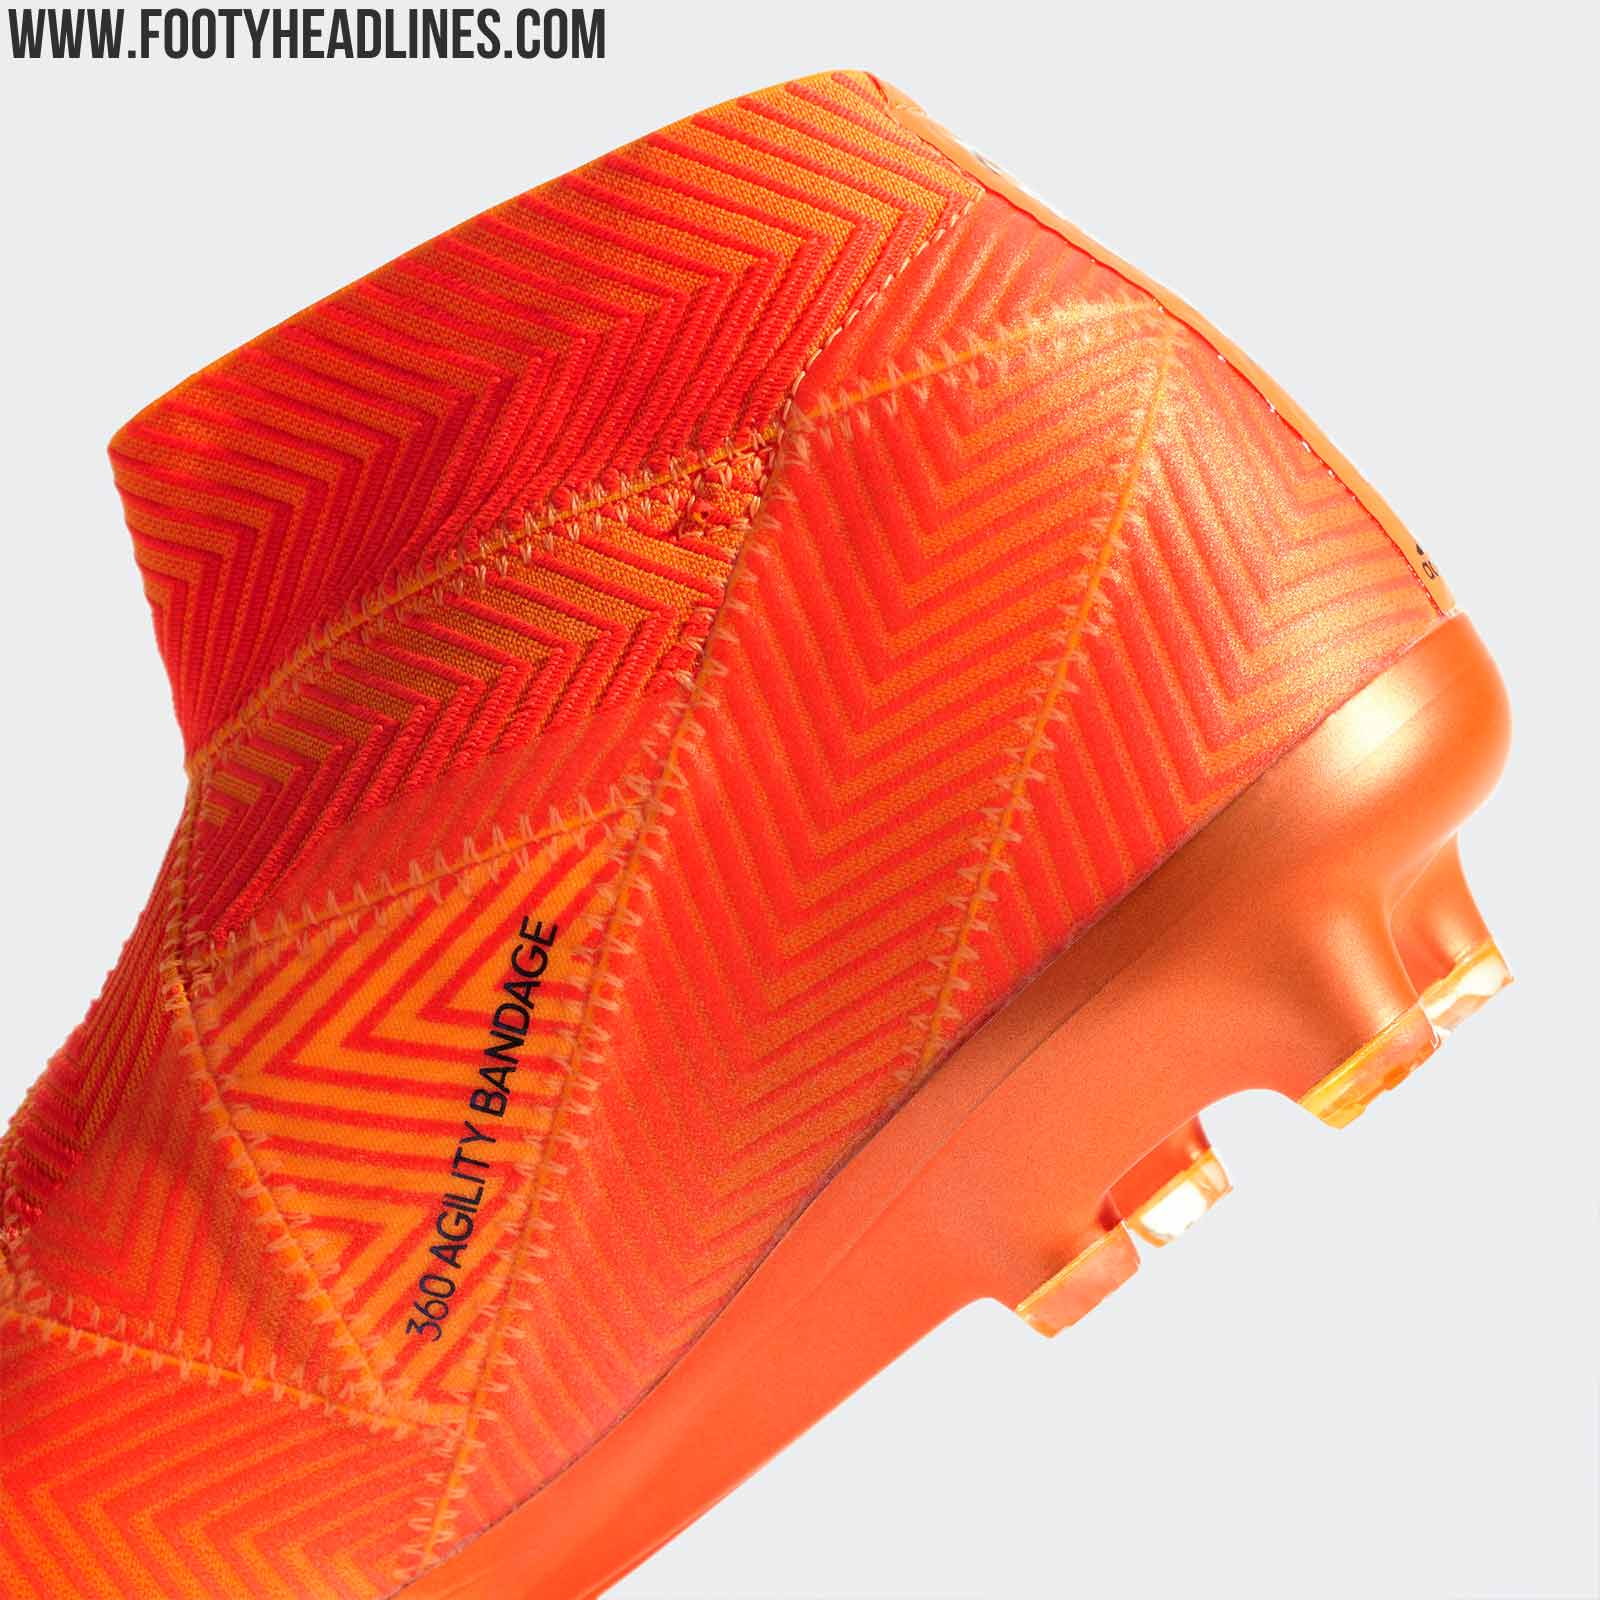 49bc765f42fca3 The next-gen Adidas Nemeziz 18+ football boots were released today. They  are part of the Adidas 'Energy Mode' 2018 World Cup boots collection.